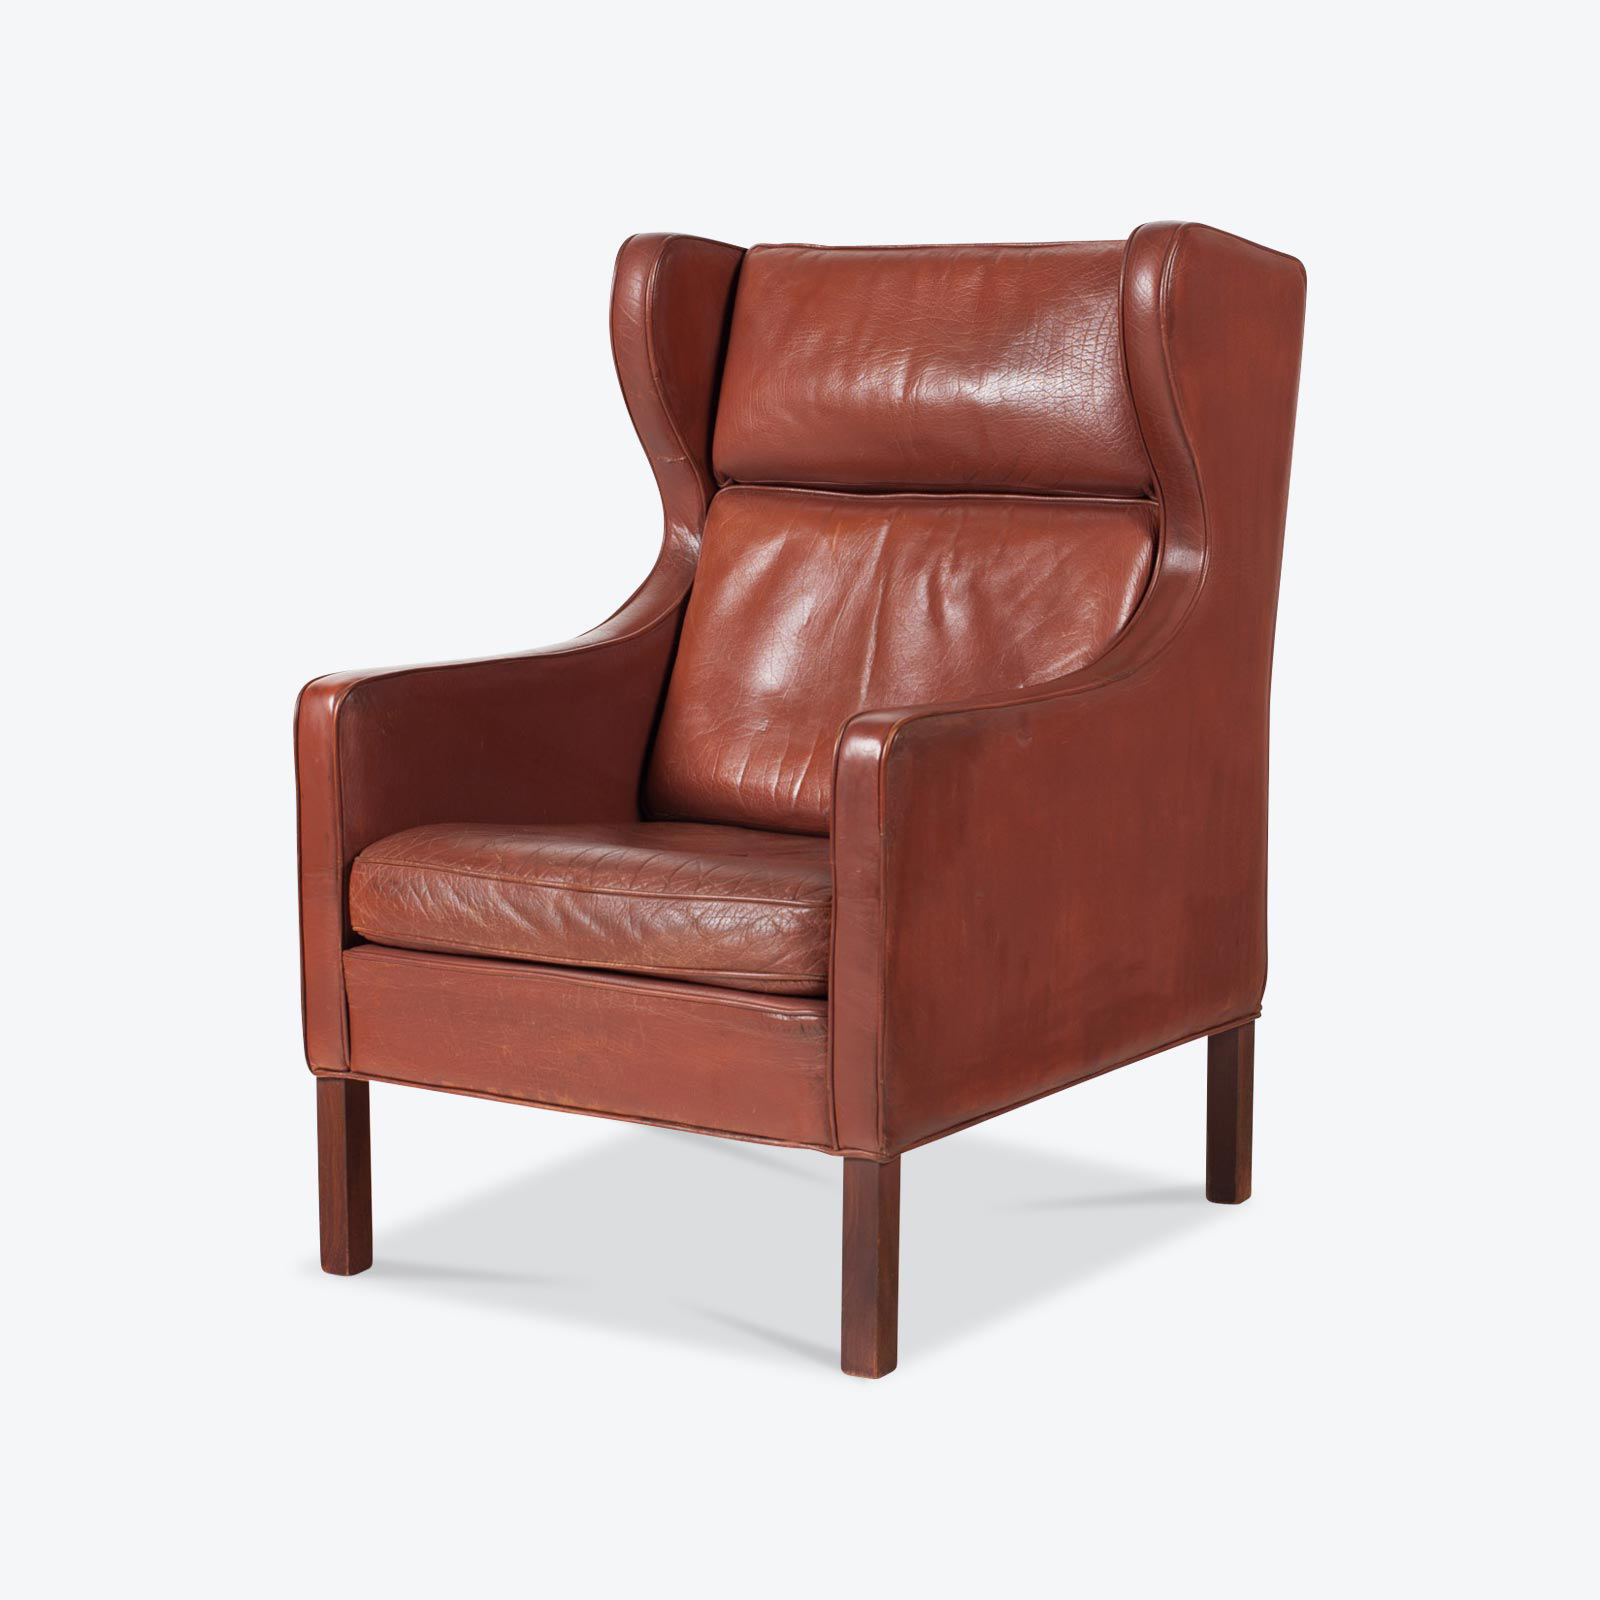 Wingback Armchair In Port Leather 1960s Denmark 02.jpg